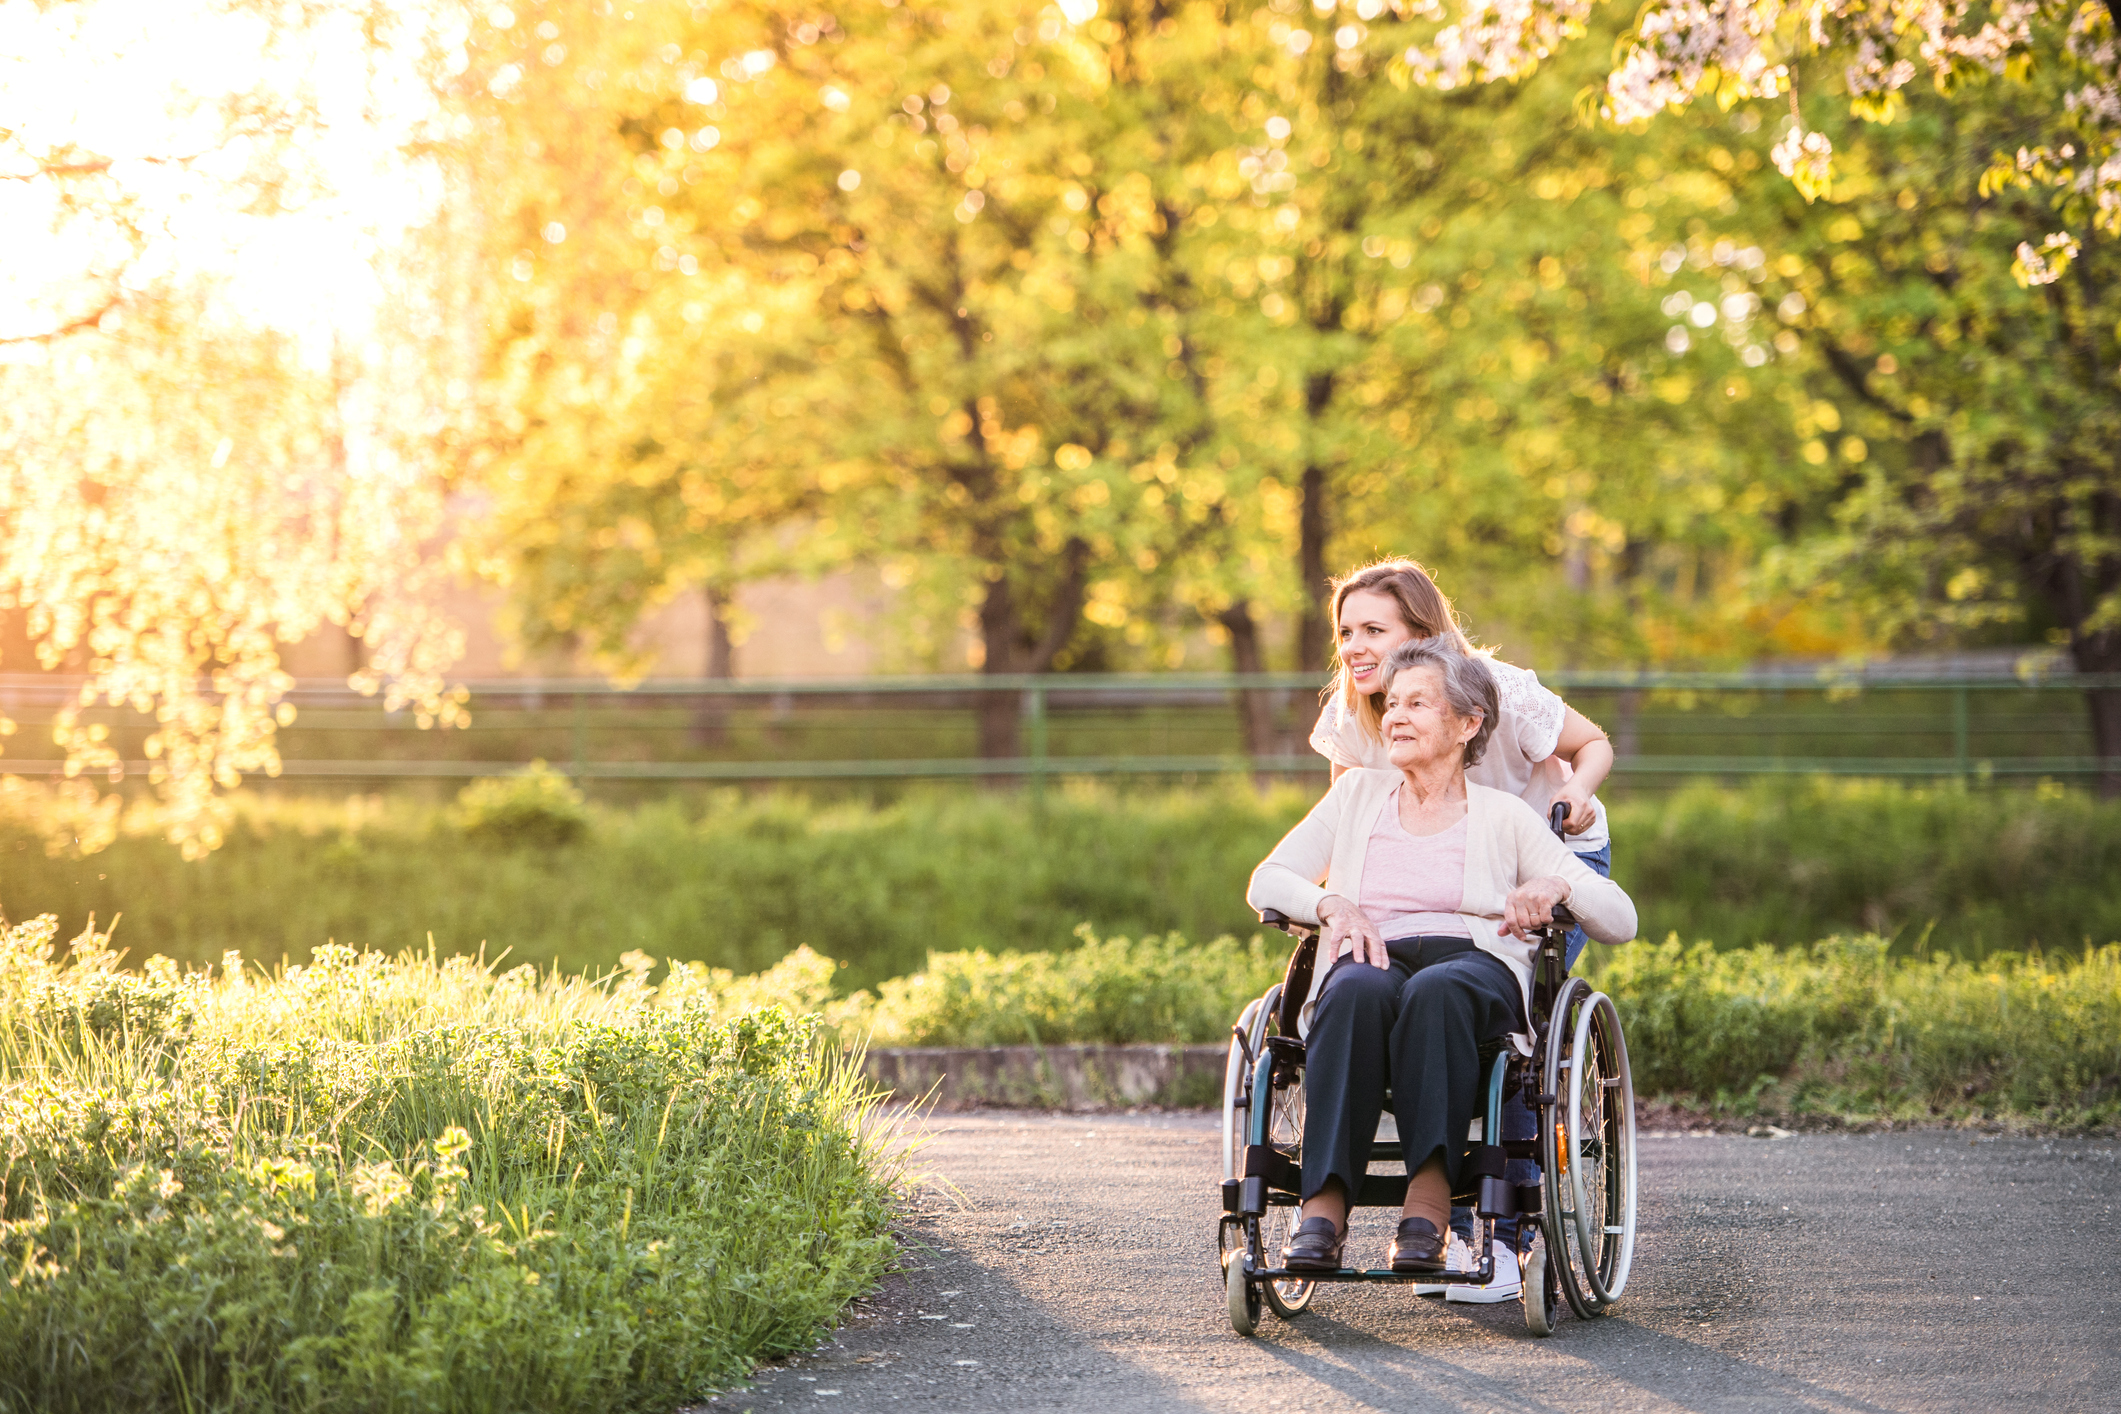 CERTIFIED HOME HEALTH AIDES - Certified Home Health Aides (CHHAs) provide hourly services assisting the patient with: daily living activities; diet and nutrition monitoring; medication reminders; assistance with prescribed exercise regimens.